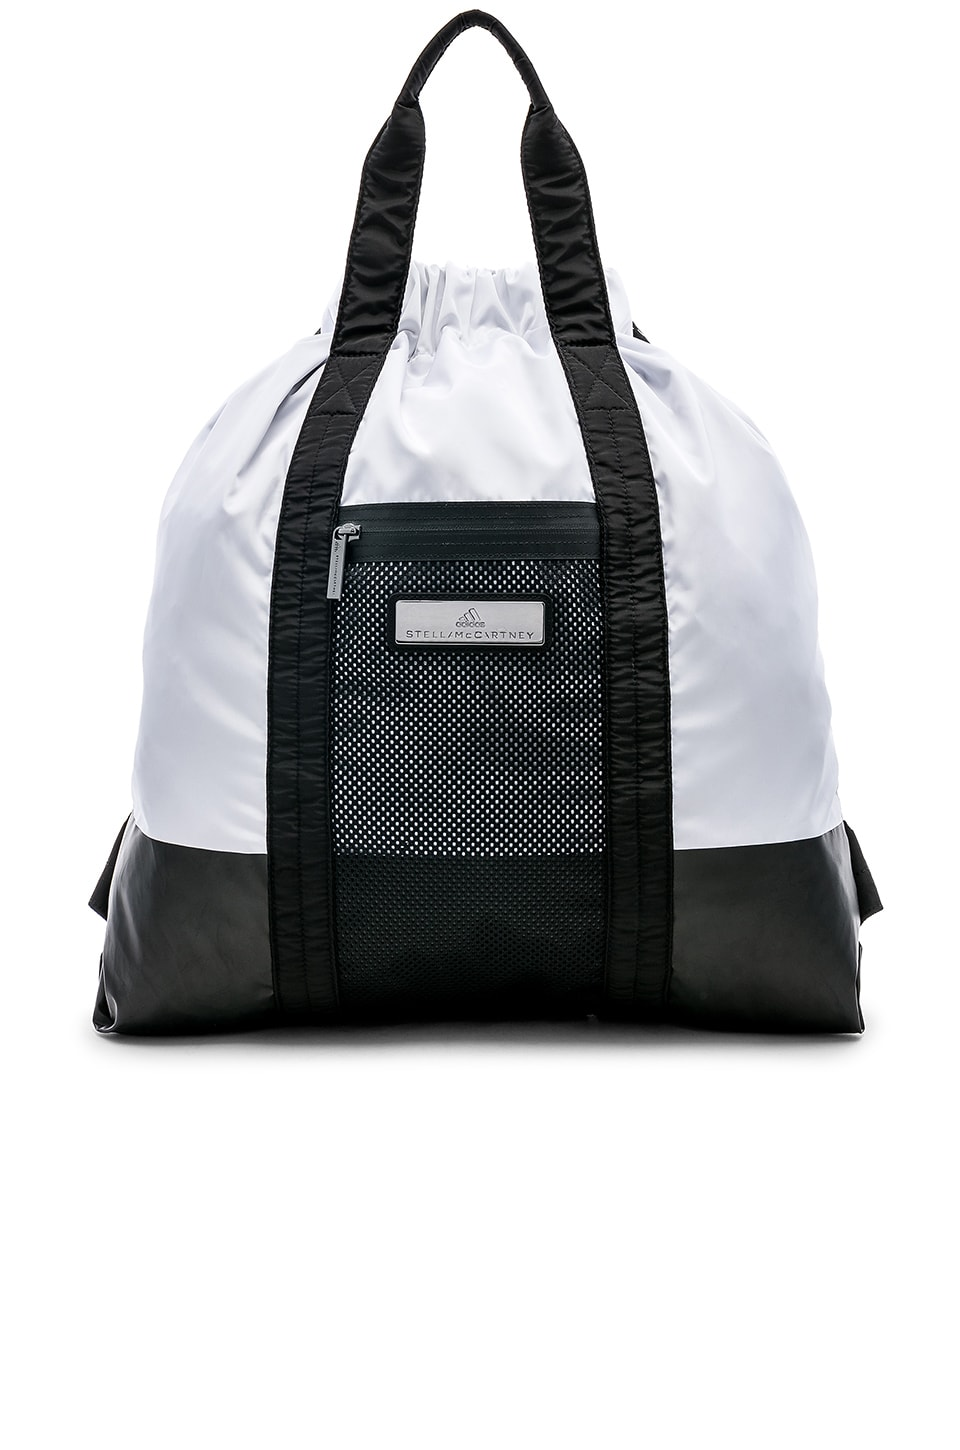 adidas by Stella McCartney Gym Sack in Black & White